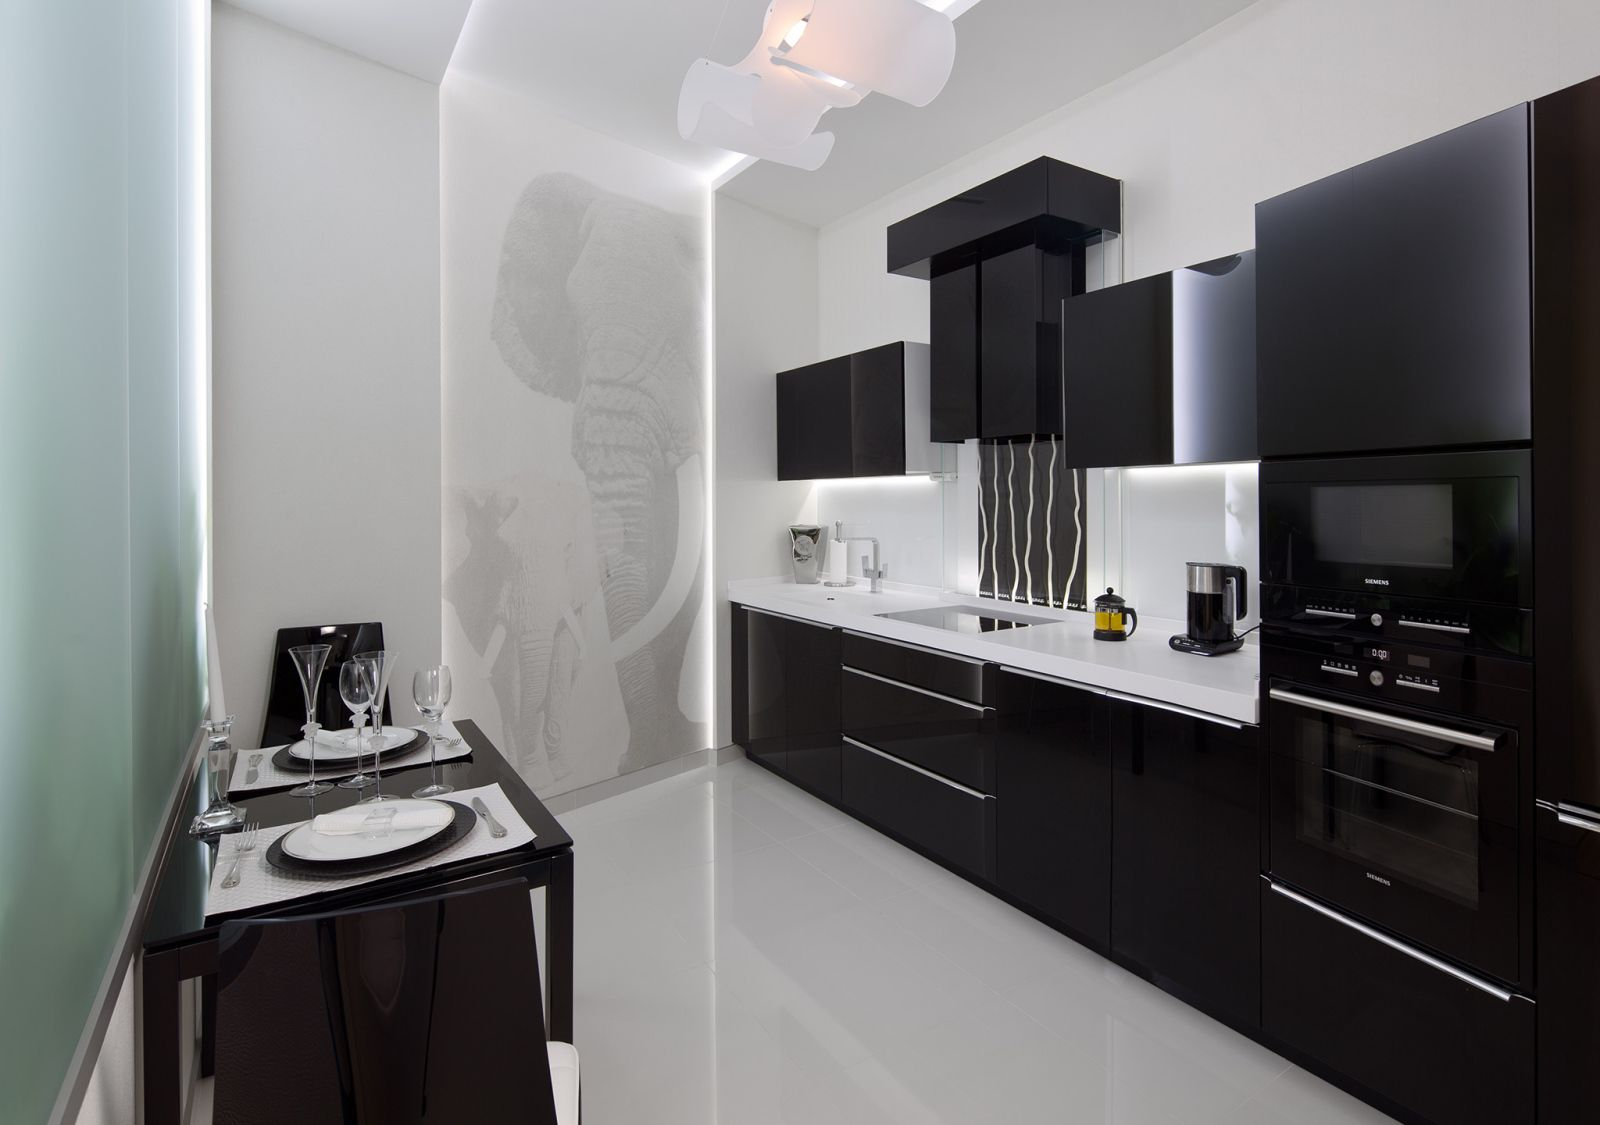 Interior Design Styles Combination in Modern Ukrainian Apartment. Kitchen with wall along layout and white/black contrast